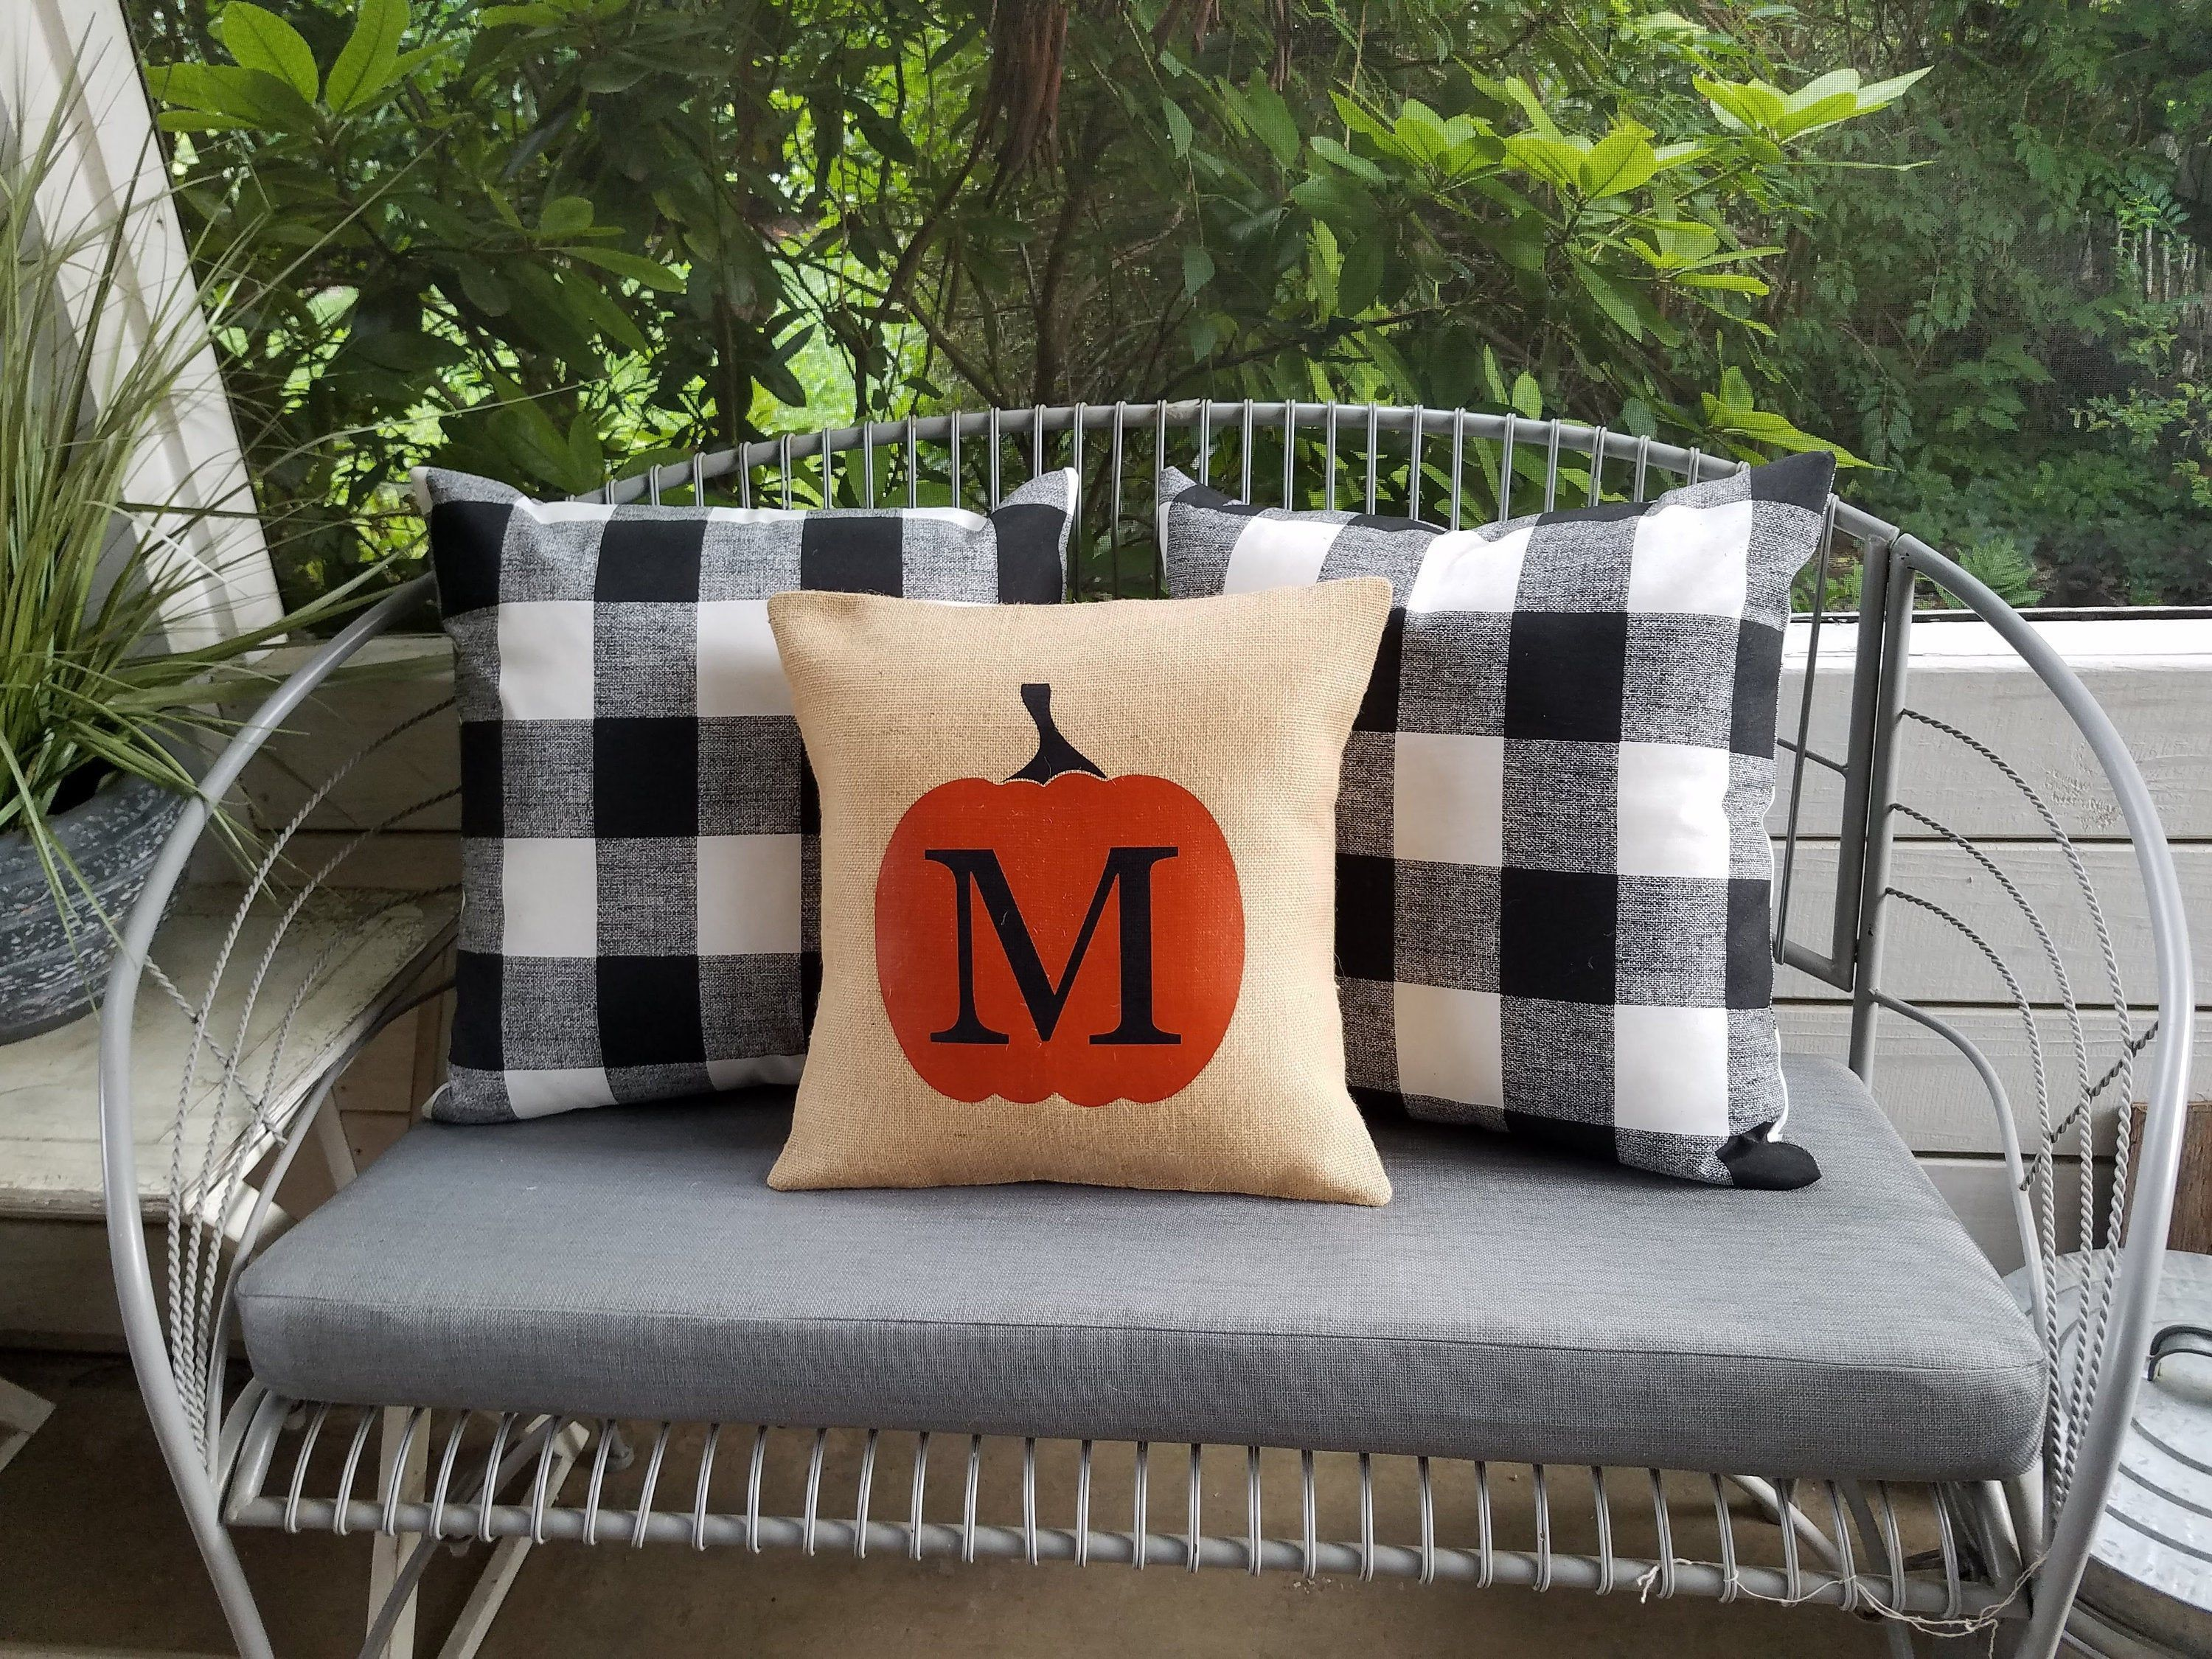 Pin on Outdoor Pillows   Modern and Rustic